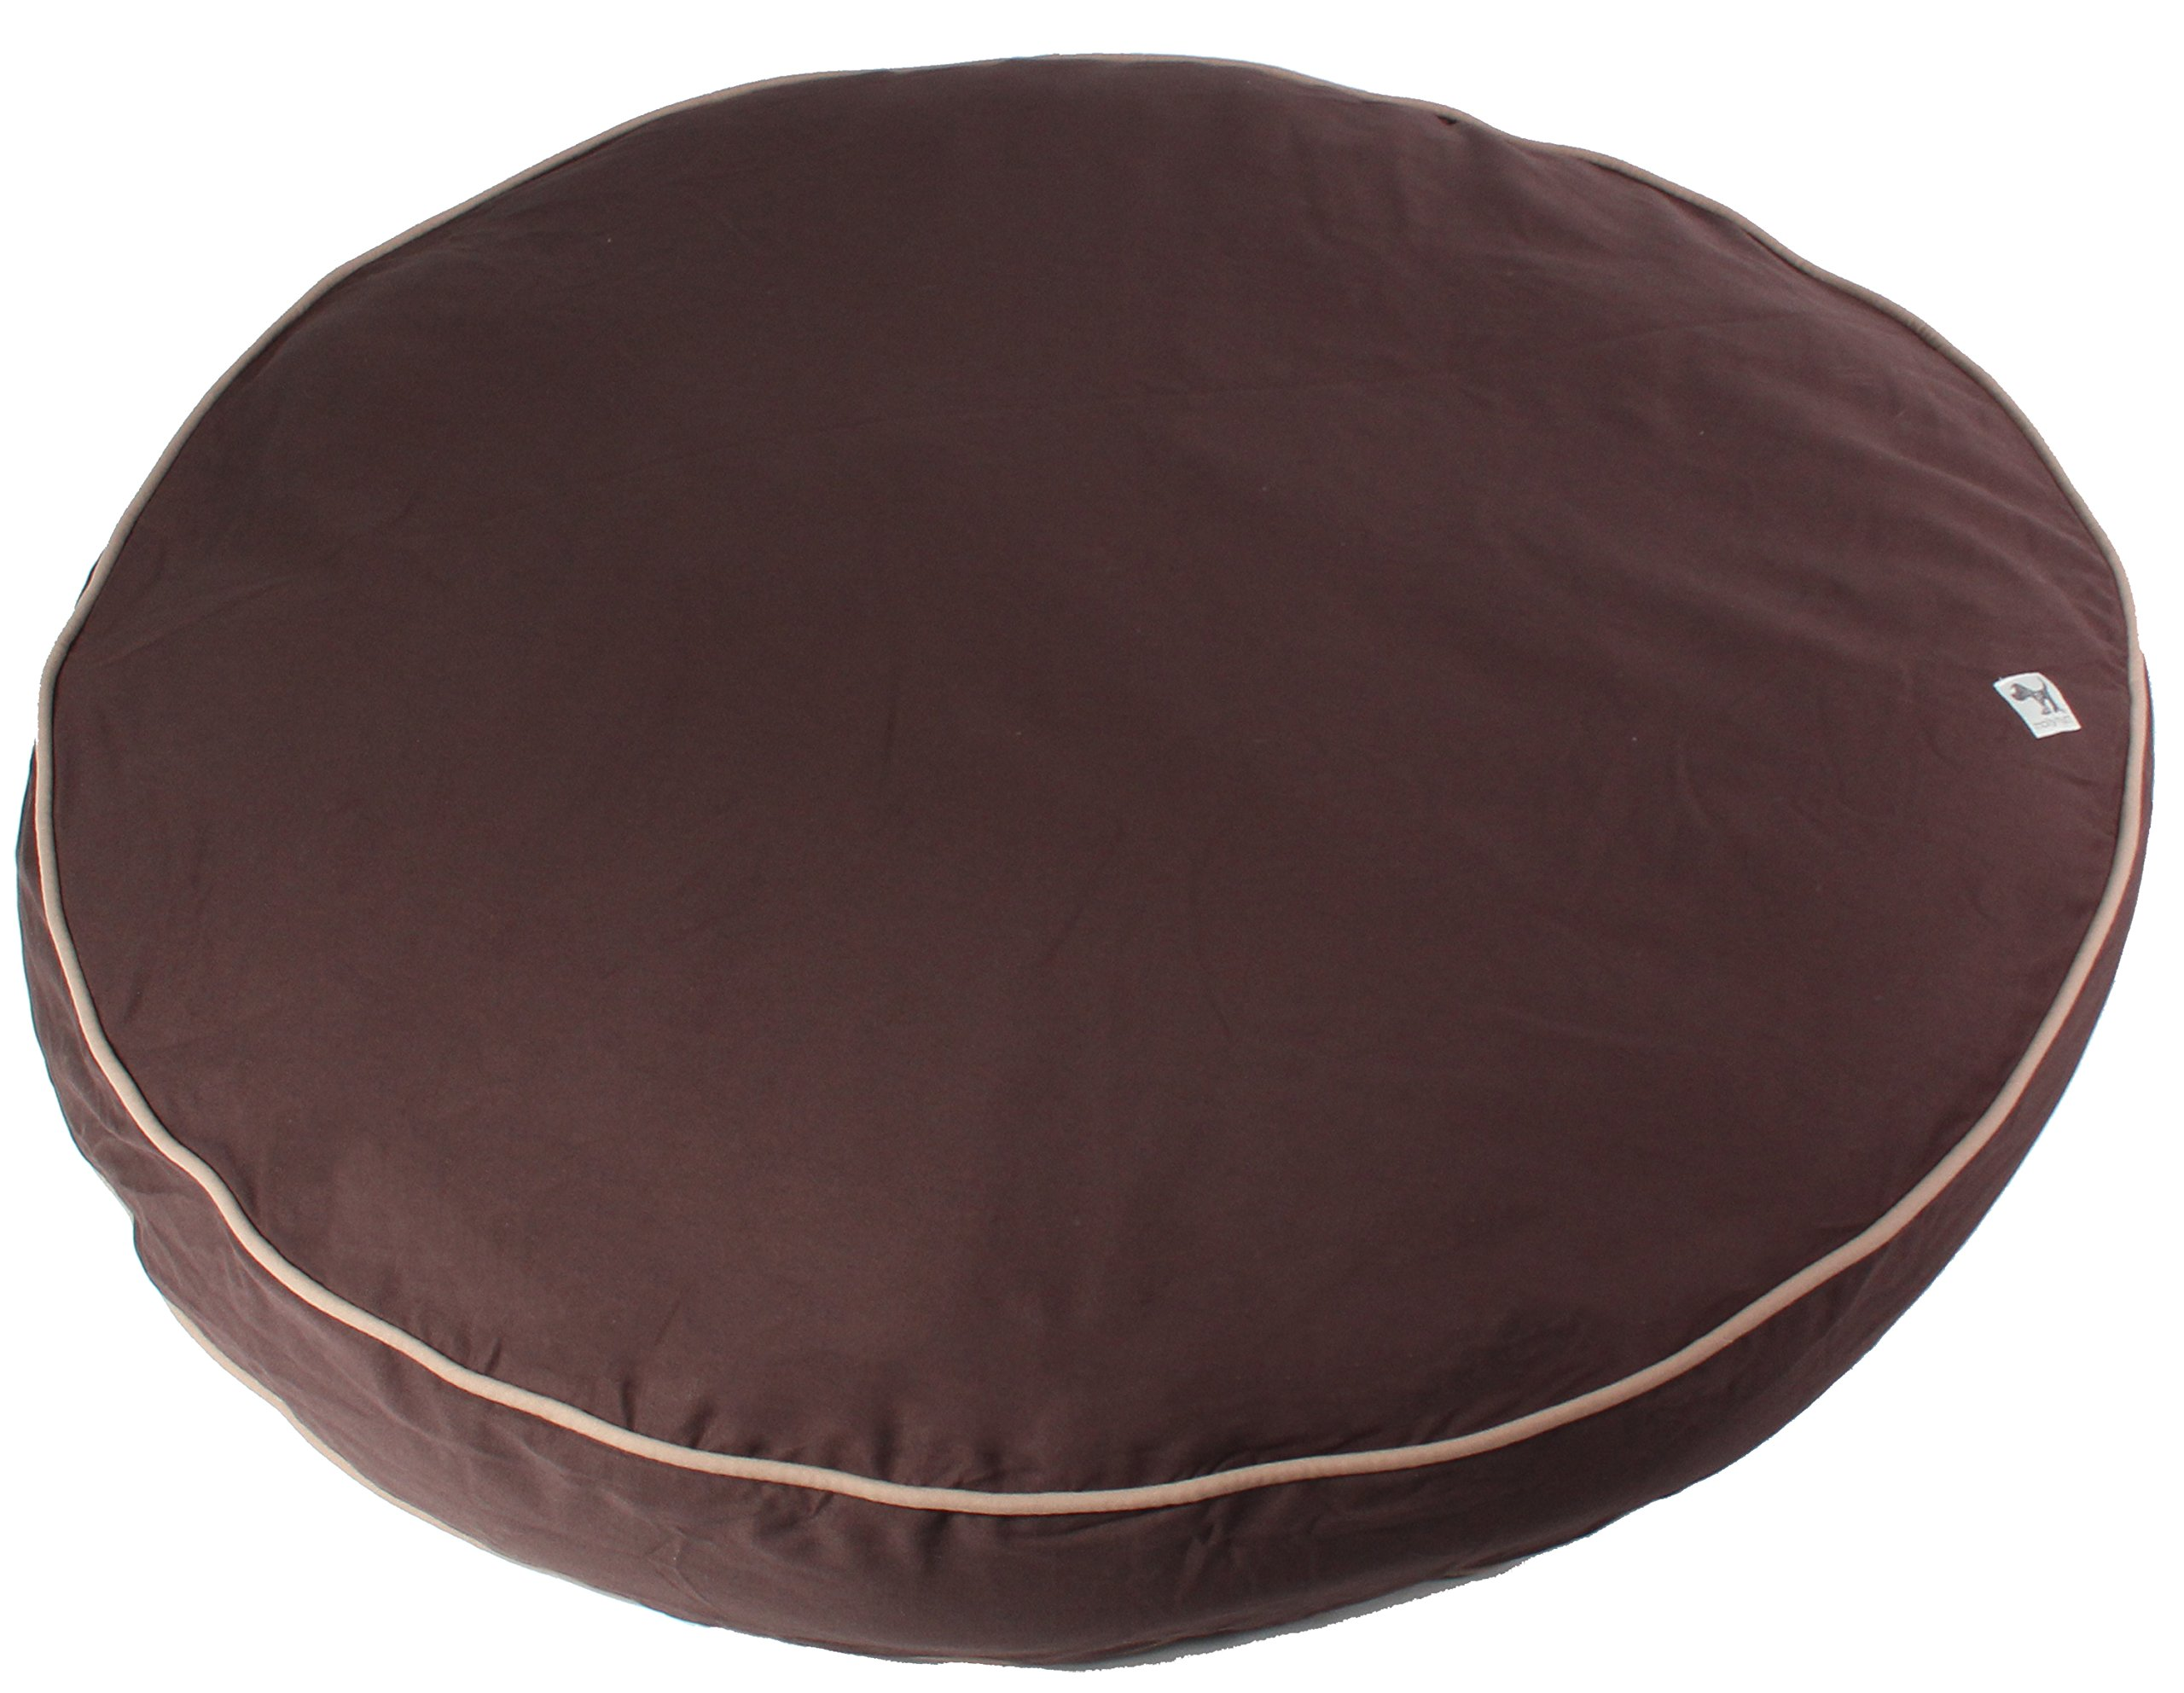 Molly Mutt 42'' Landslide Round Dog Bed Duvet Kit - 100% Cotton, Durable, Washable